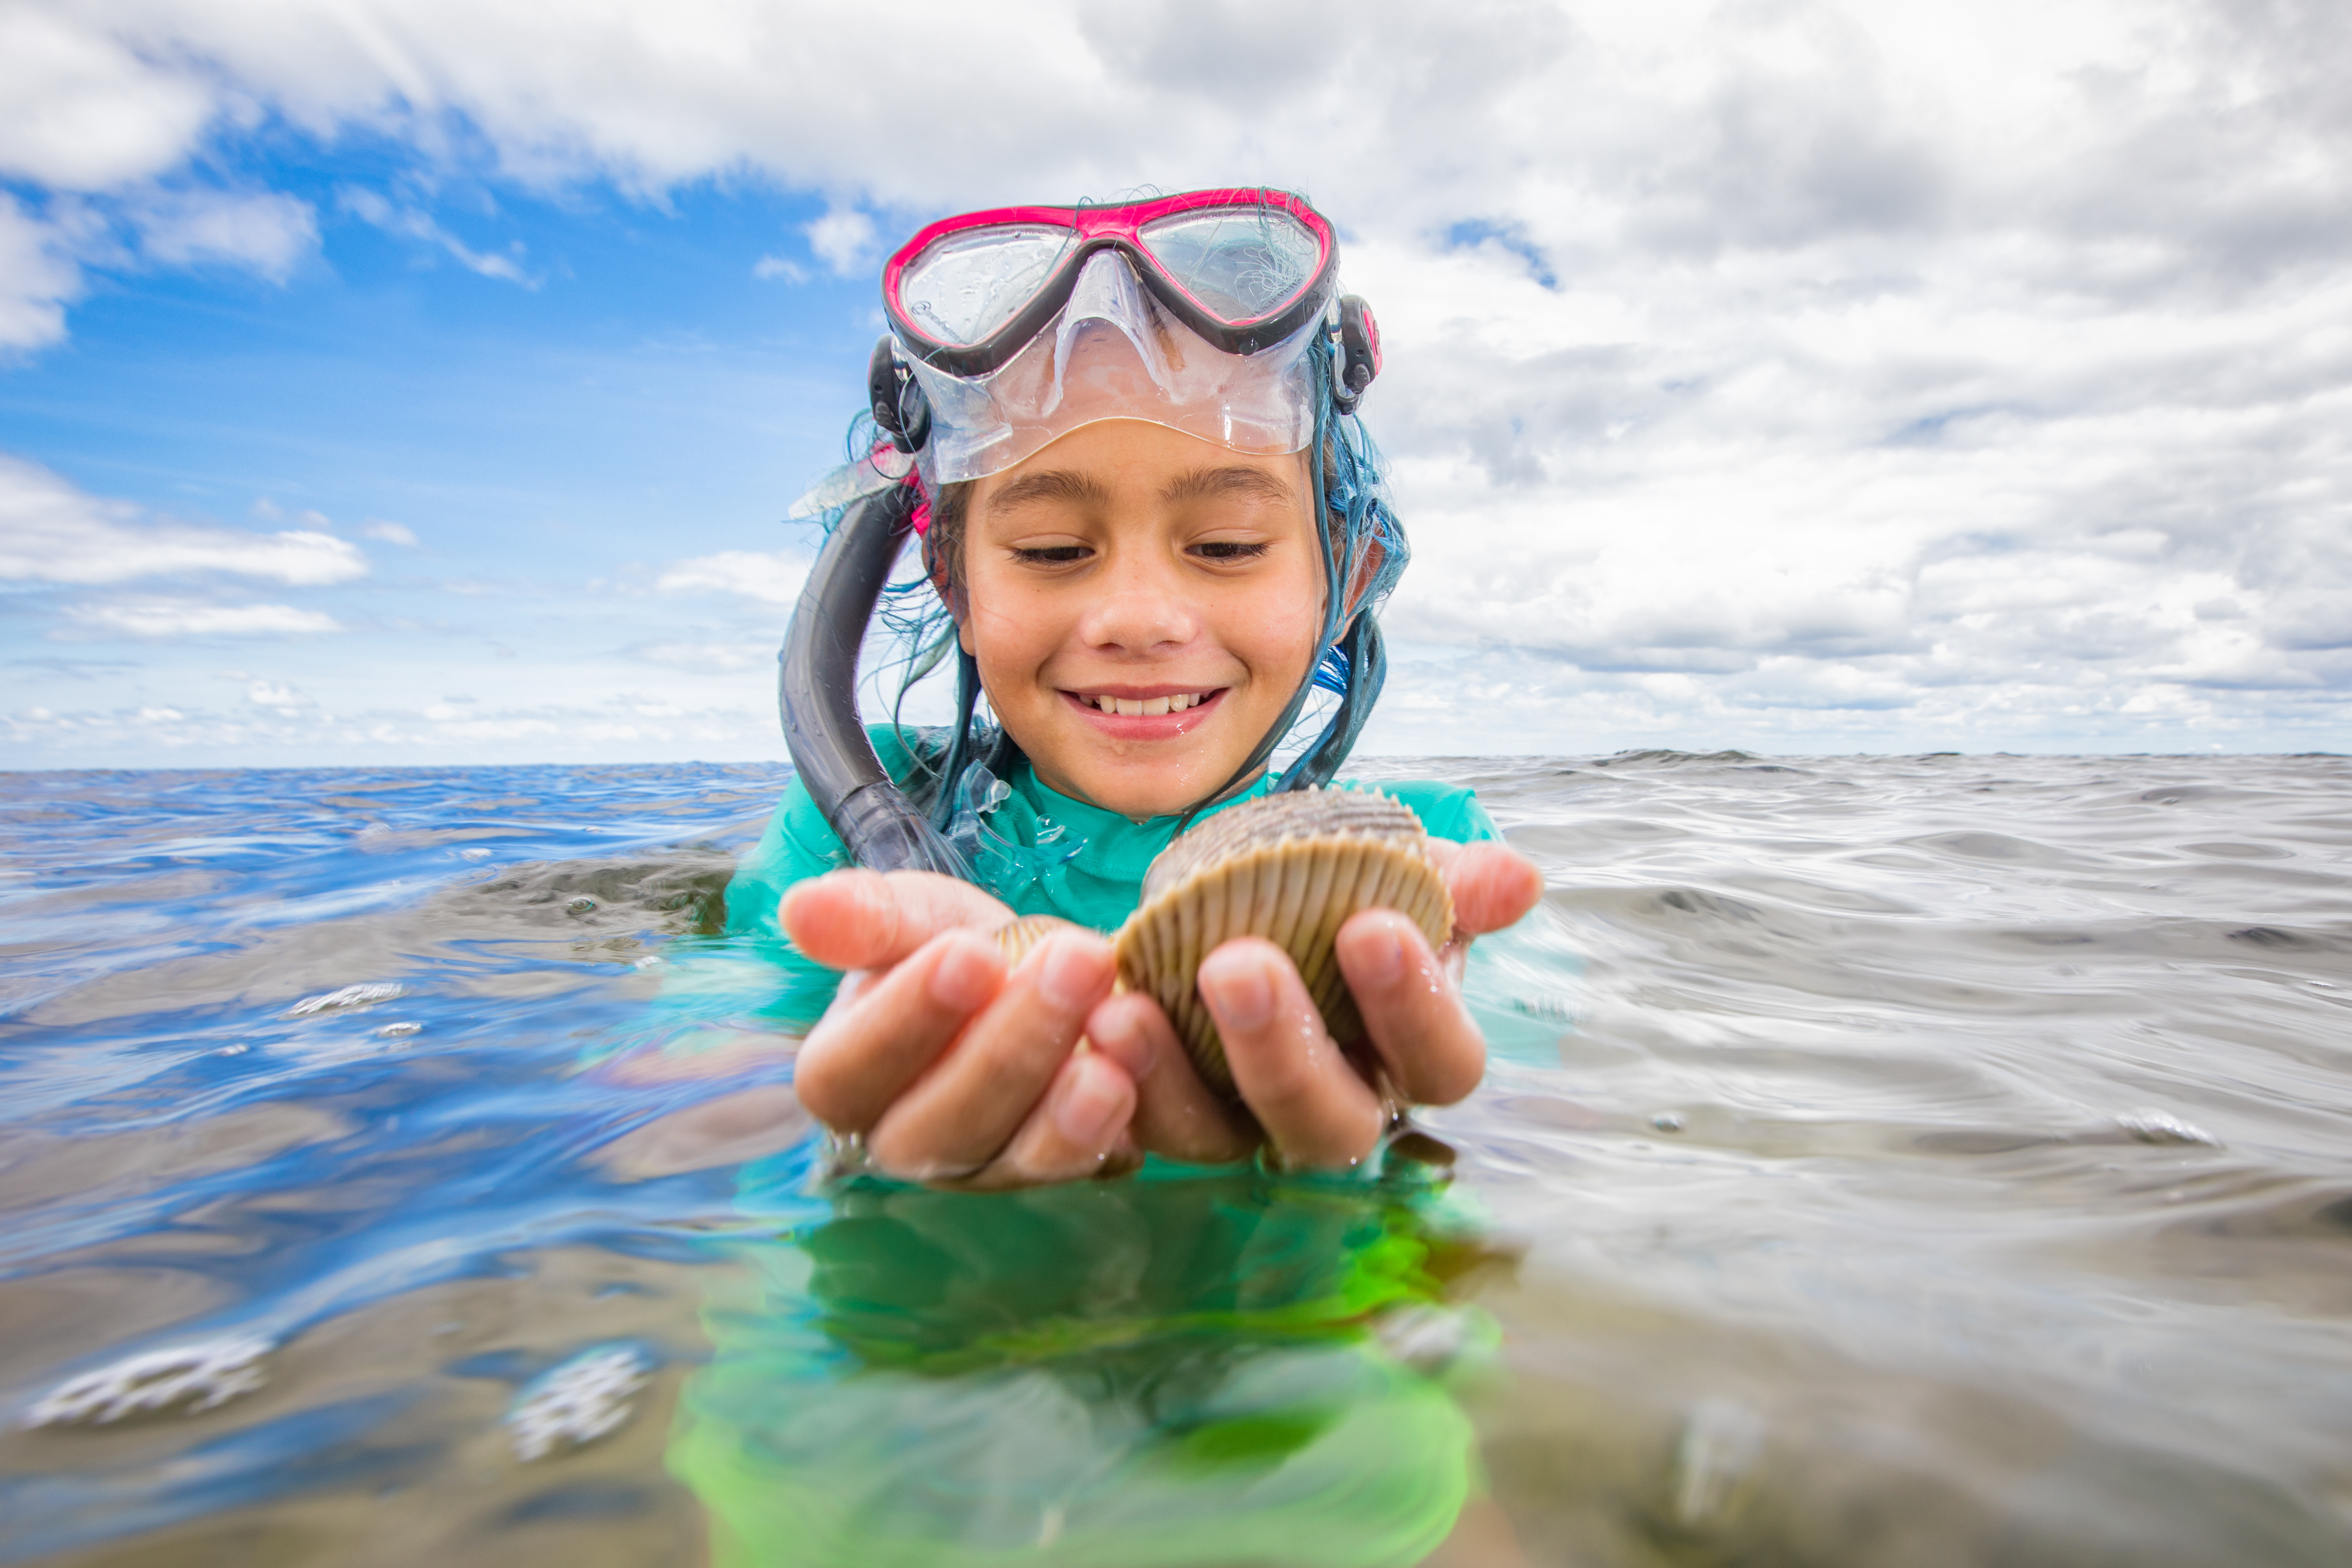 Girl treading water smiling and holding a scallop